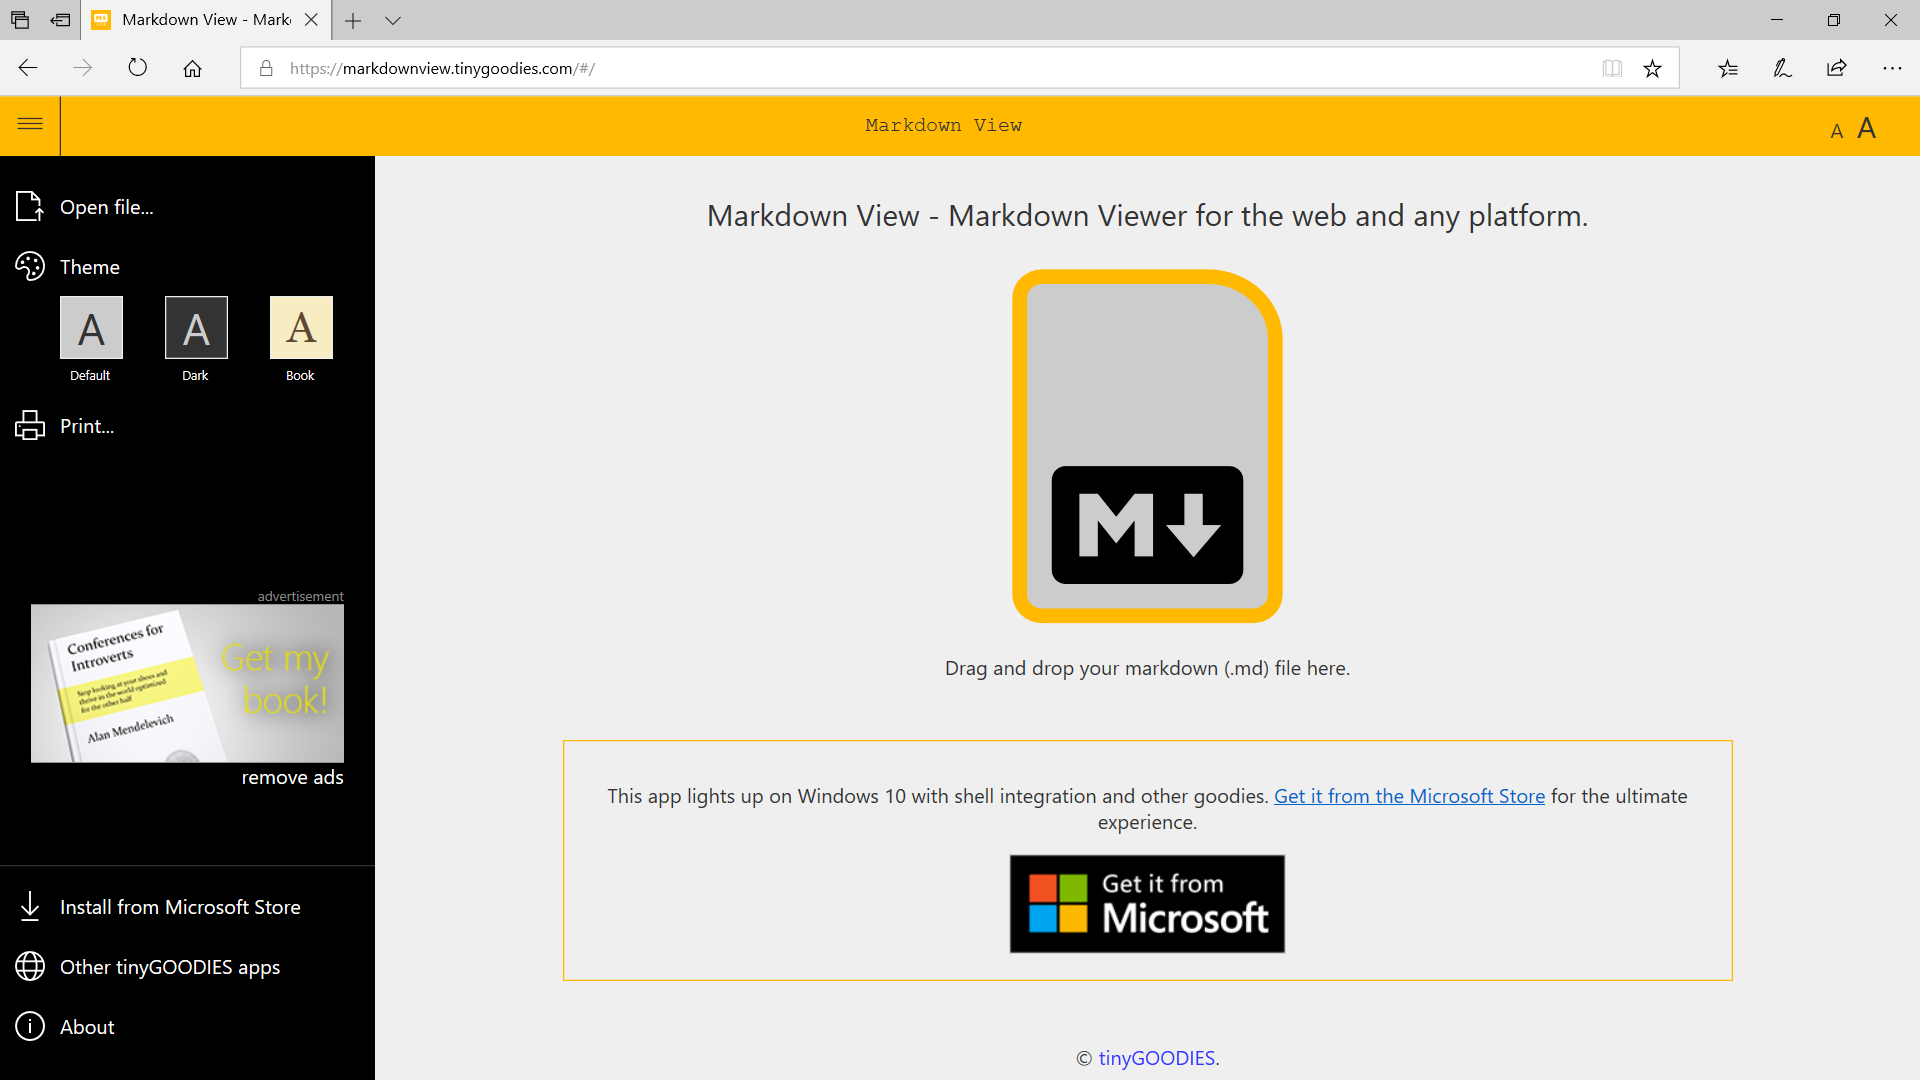 Markdown View — Markdown Viewer for the Web, Windows 10